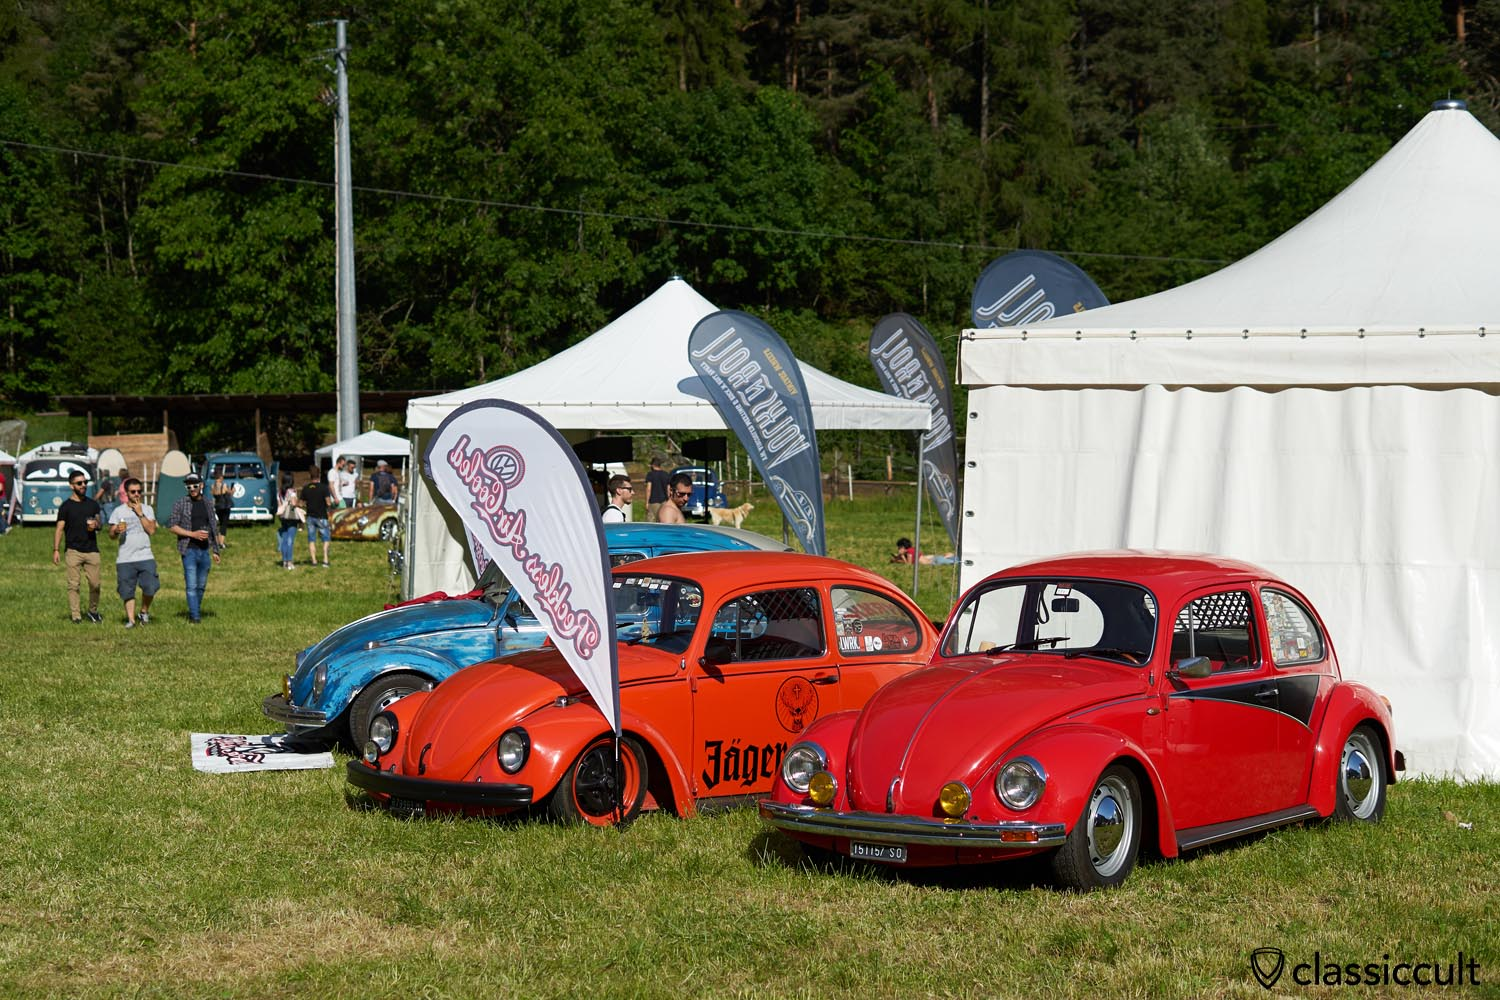 Reckless AirCooled